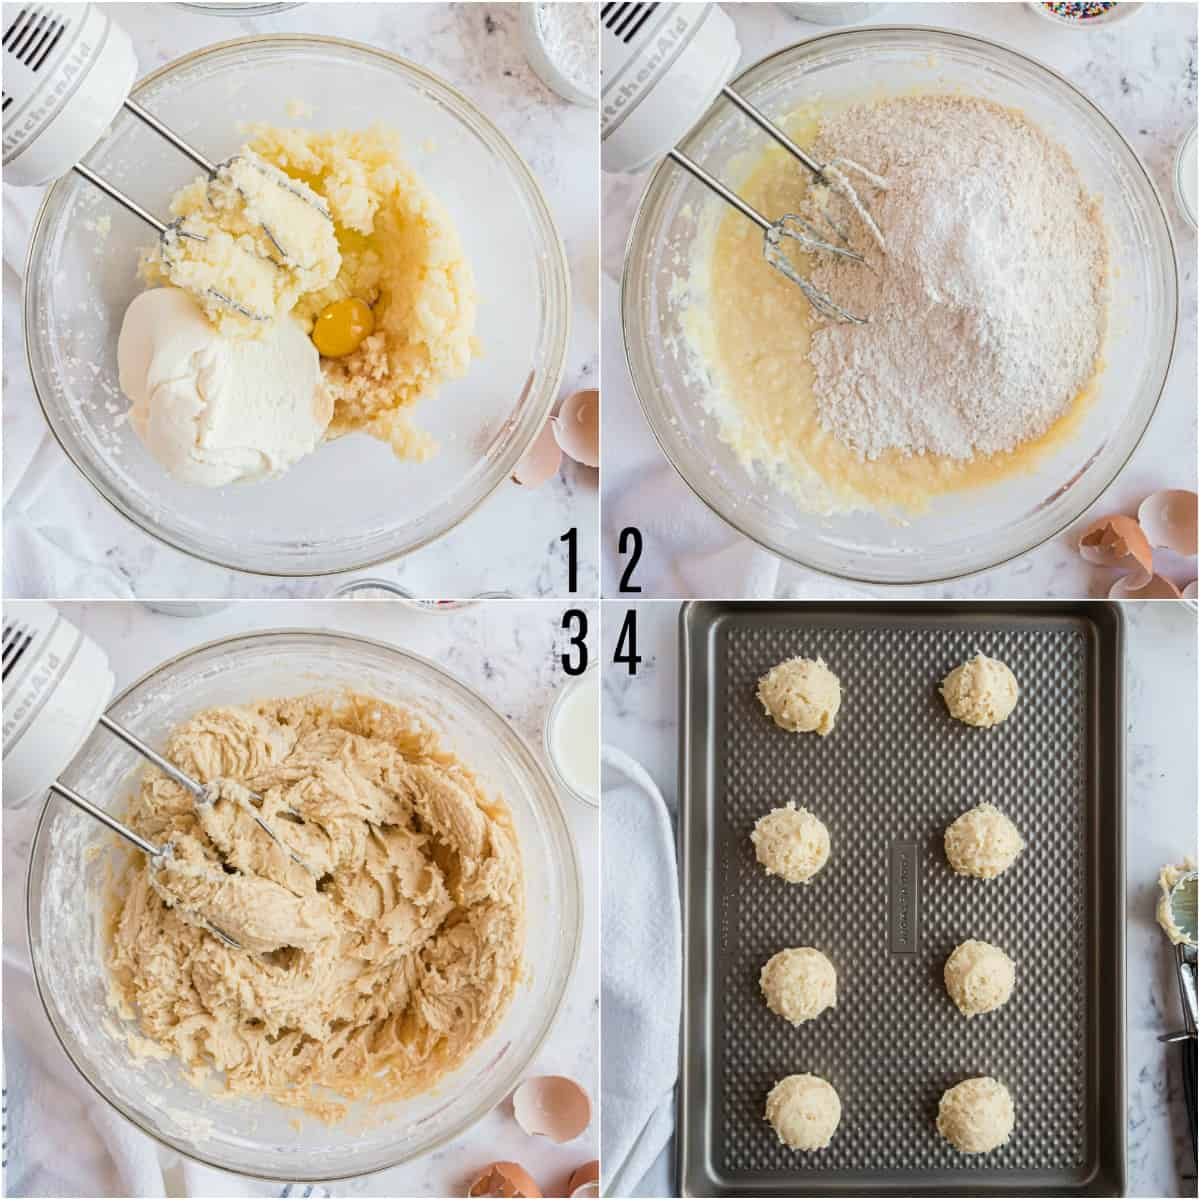 Step by step photos showing how to bake Italian ricotta cookies.